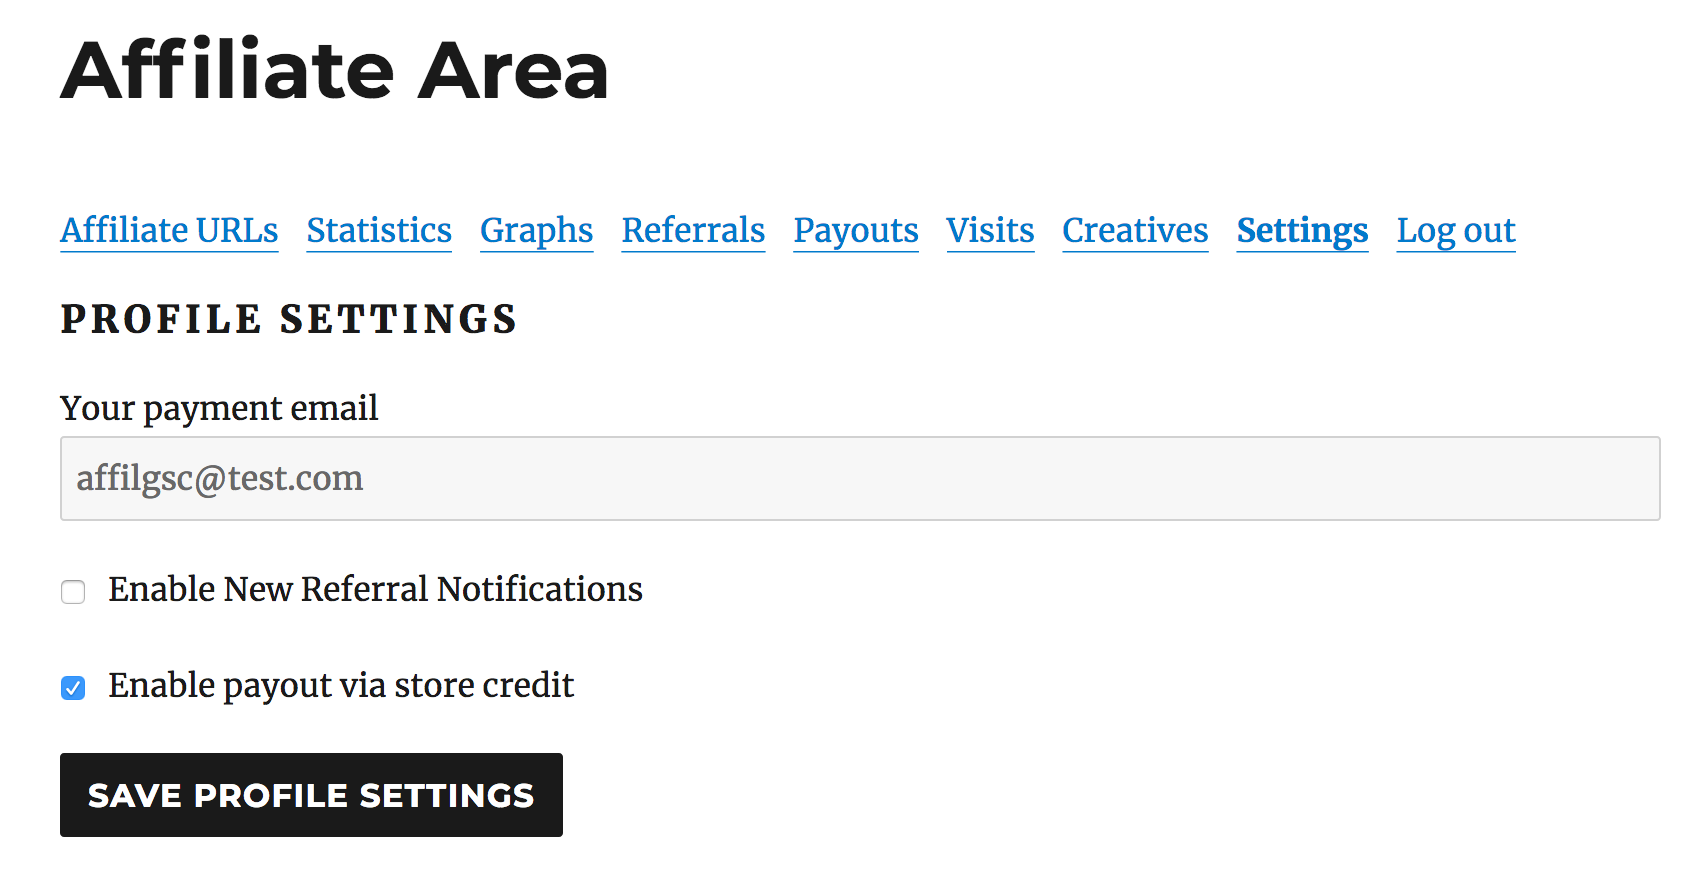 Affiliate Area Settings enable store credit payouts